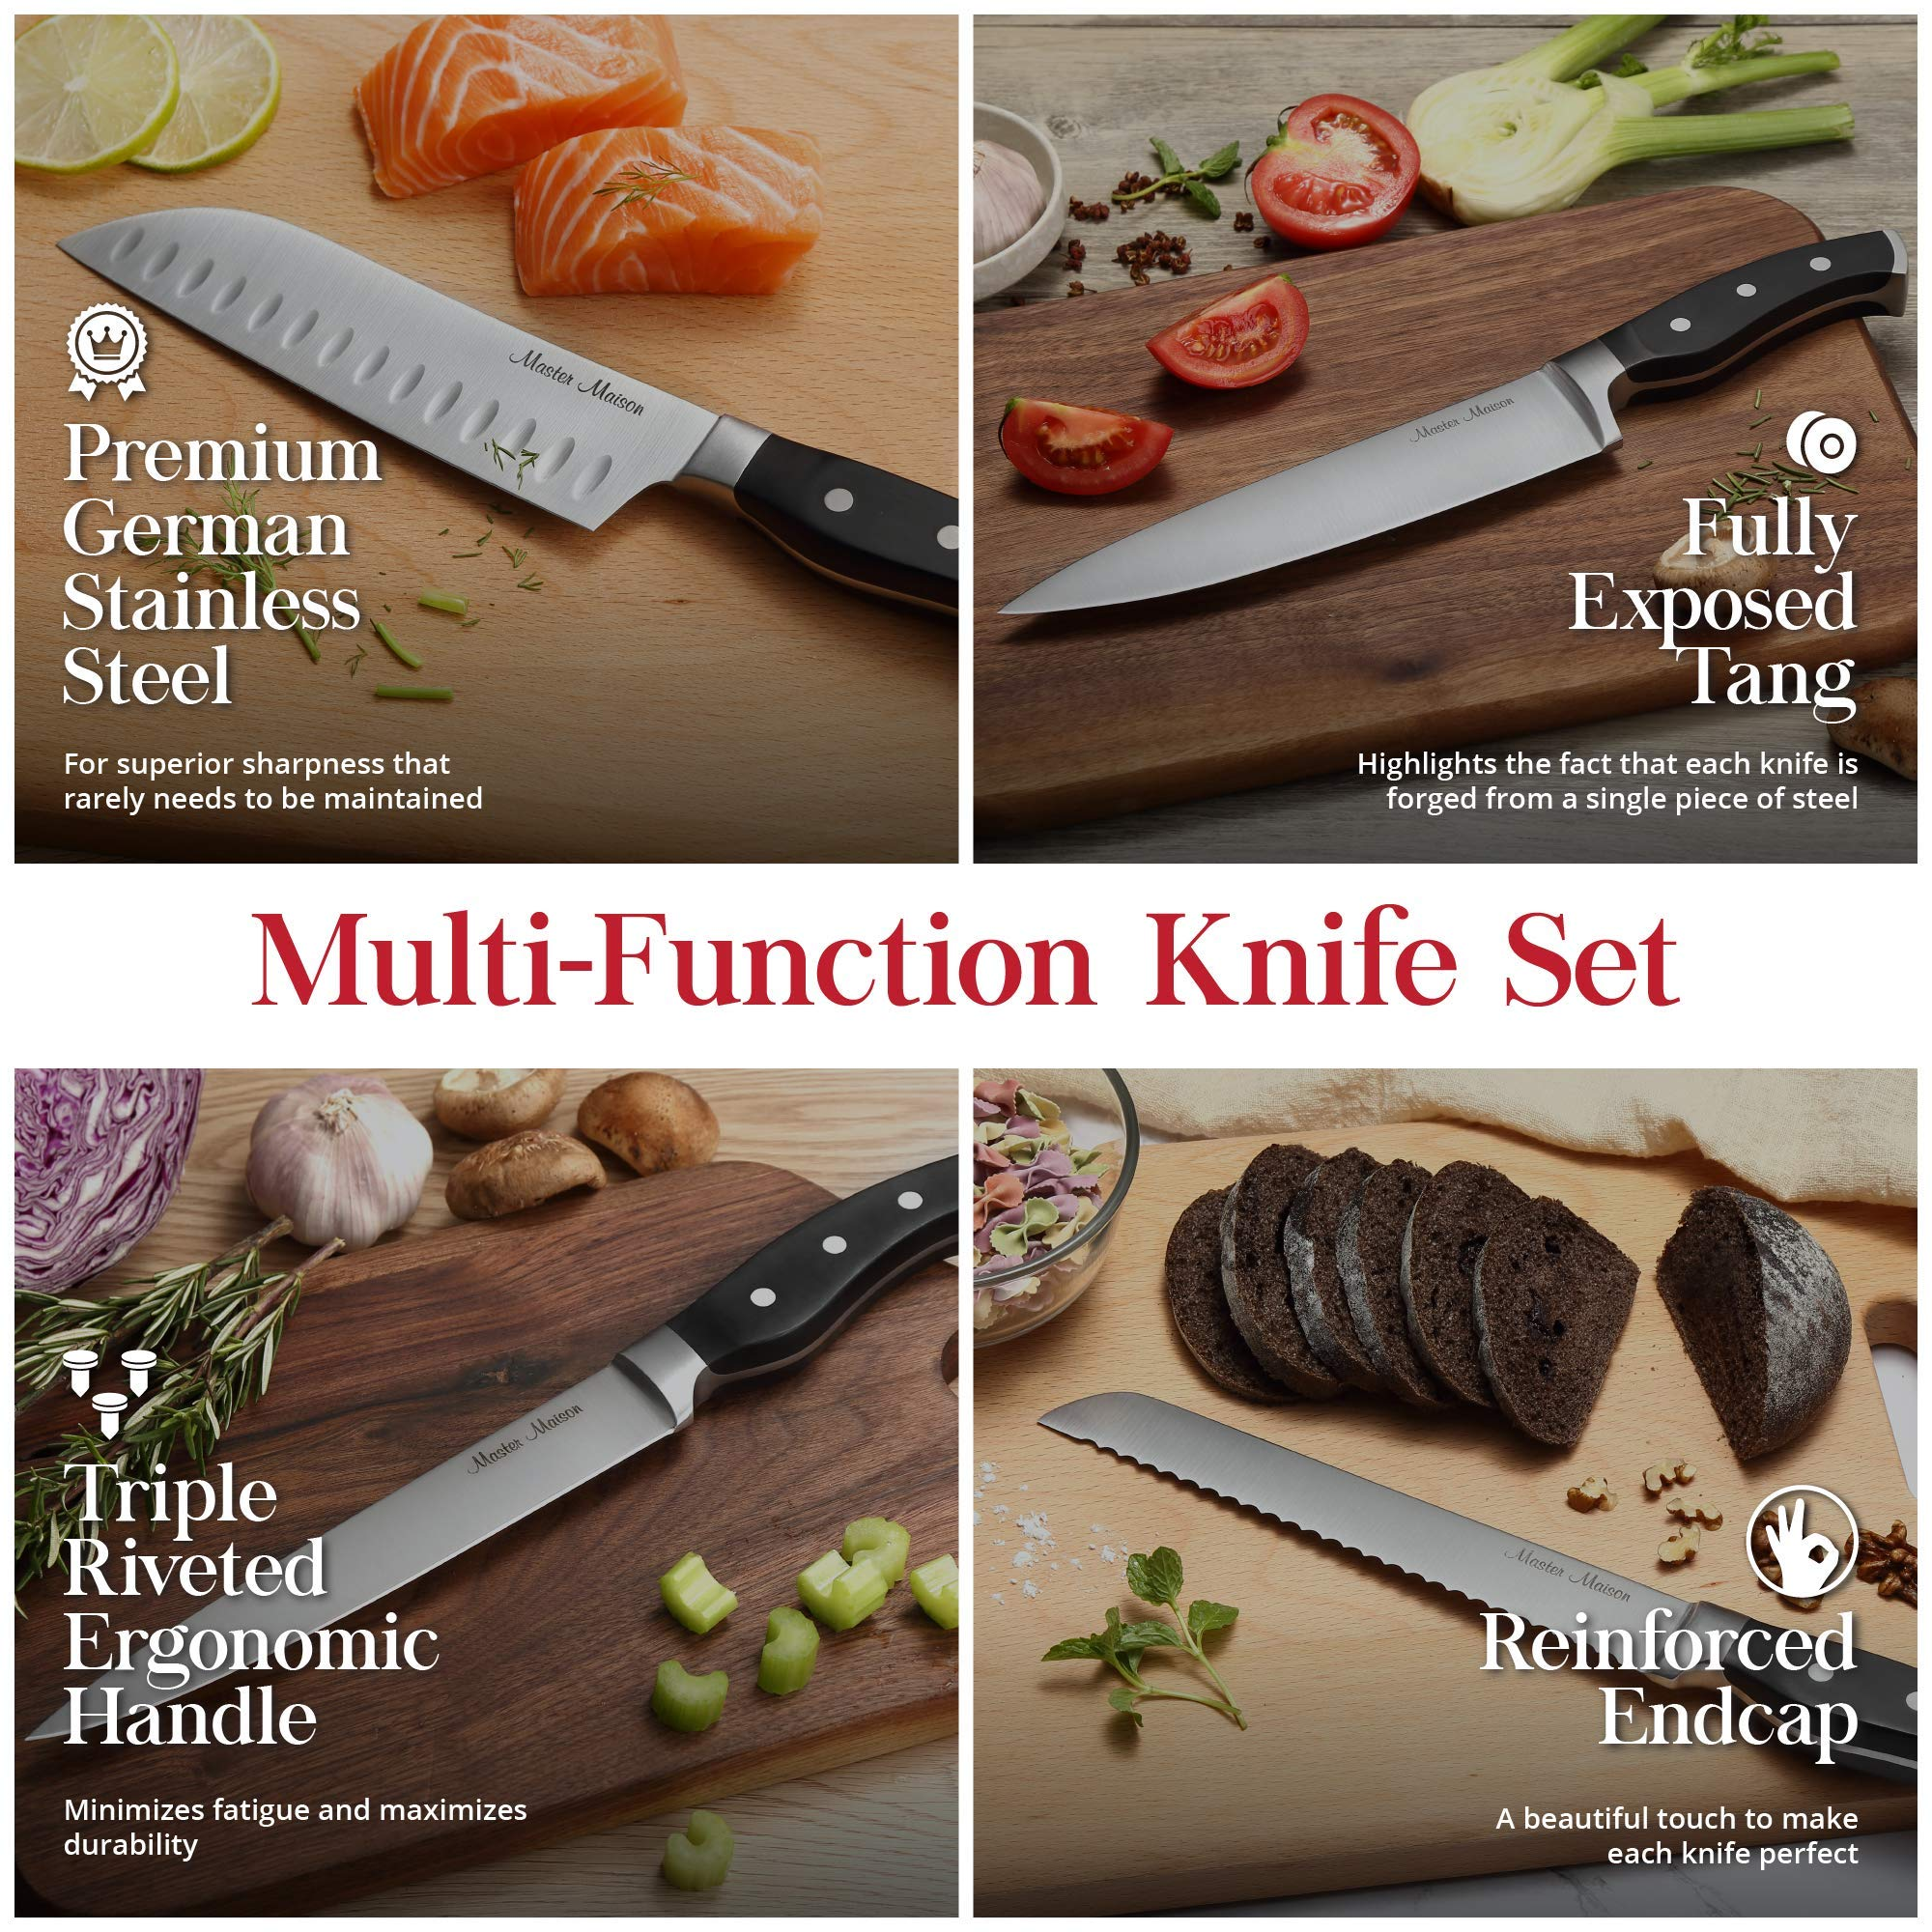 19-Piece Premium Kitchen Knife Set With Wooden Block | Master Maison German Stainless Steel Cutlery With Knife Sharpener & 8 Steak Knives by Master Maison (Image #4)